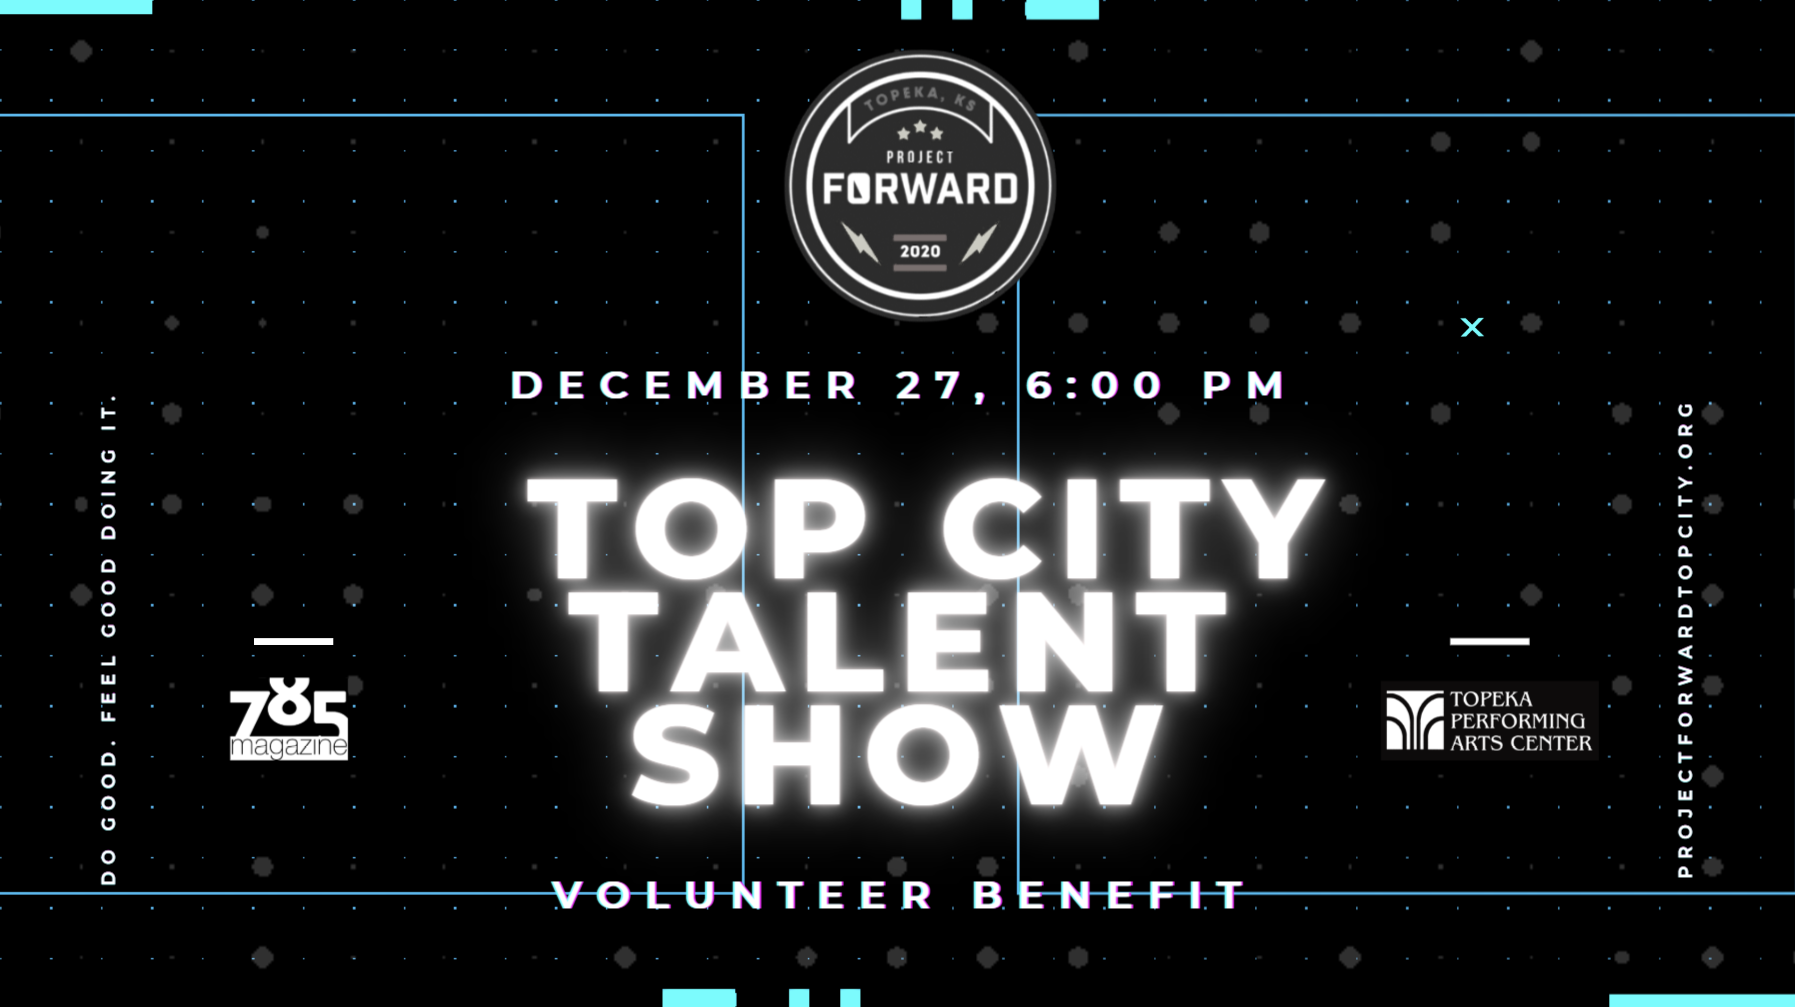 Top City Talent Show